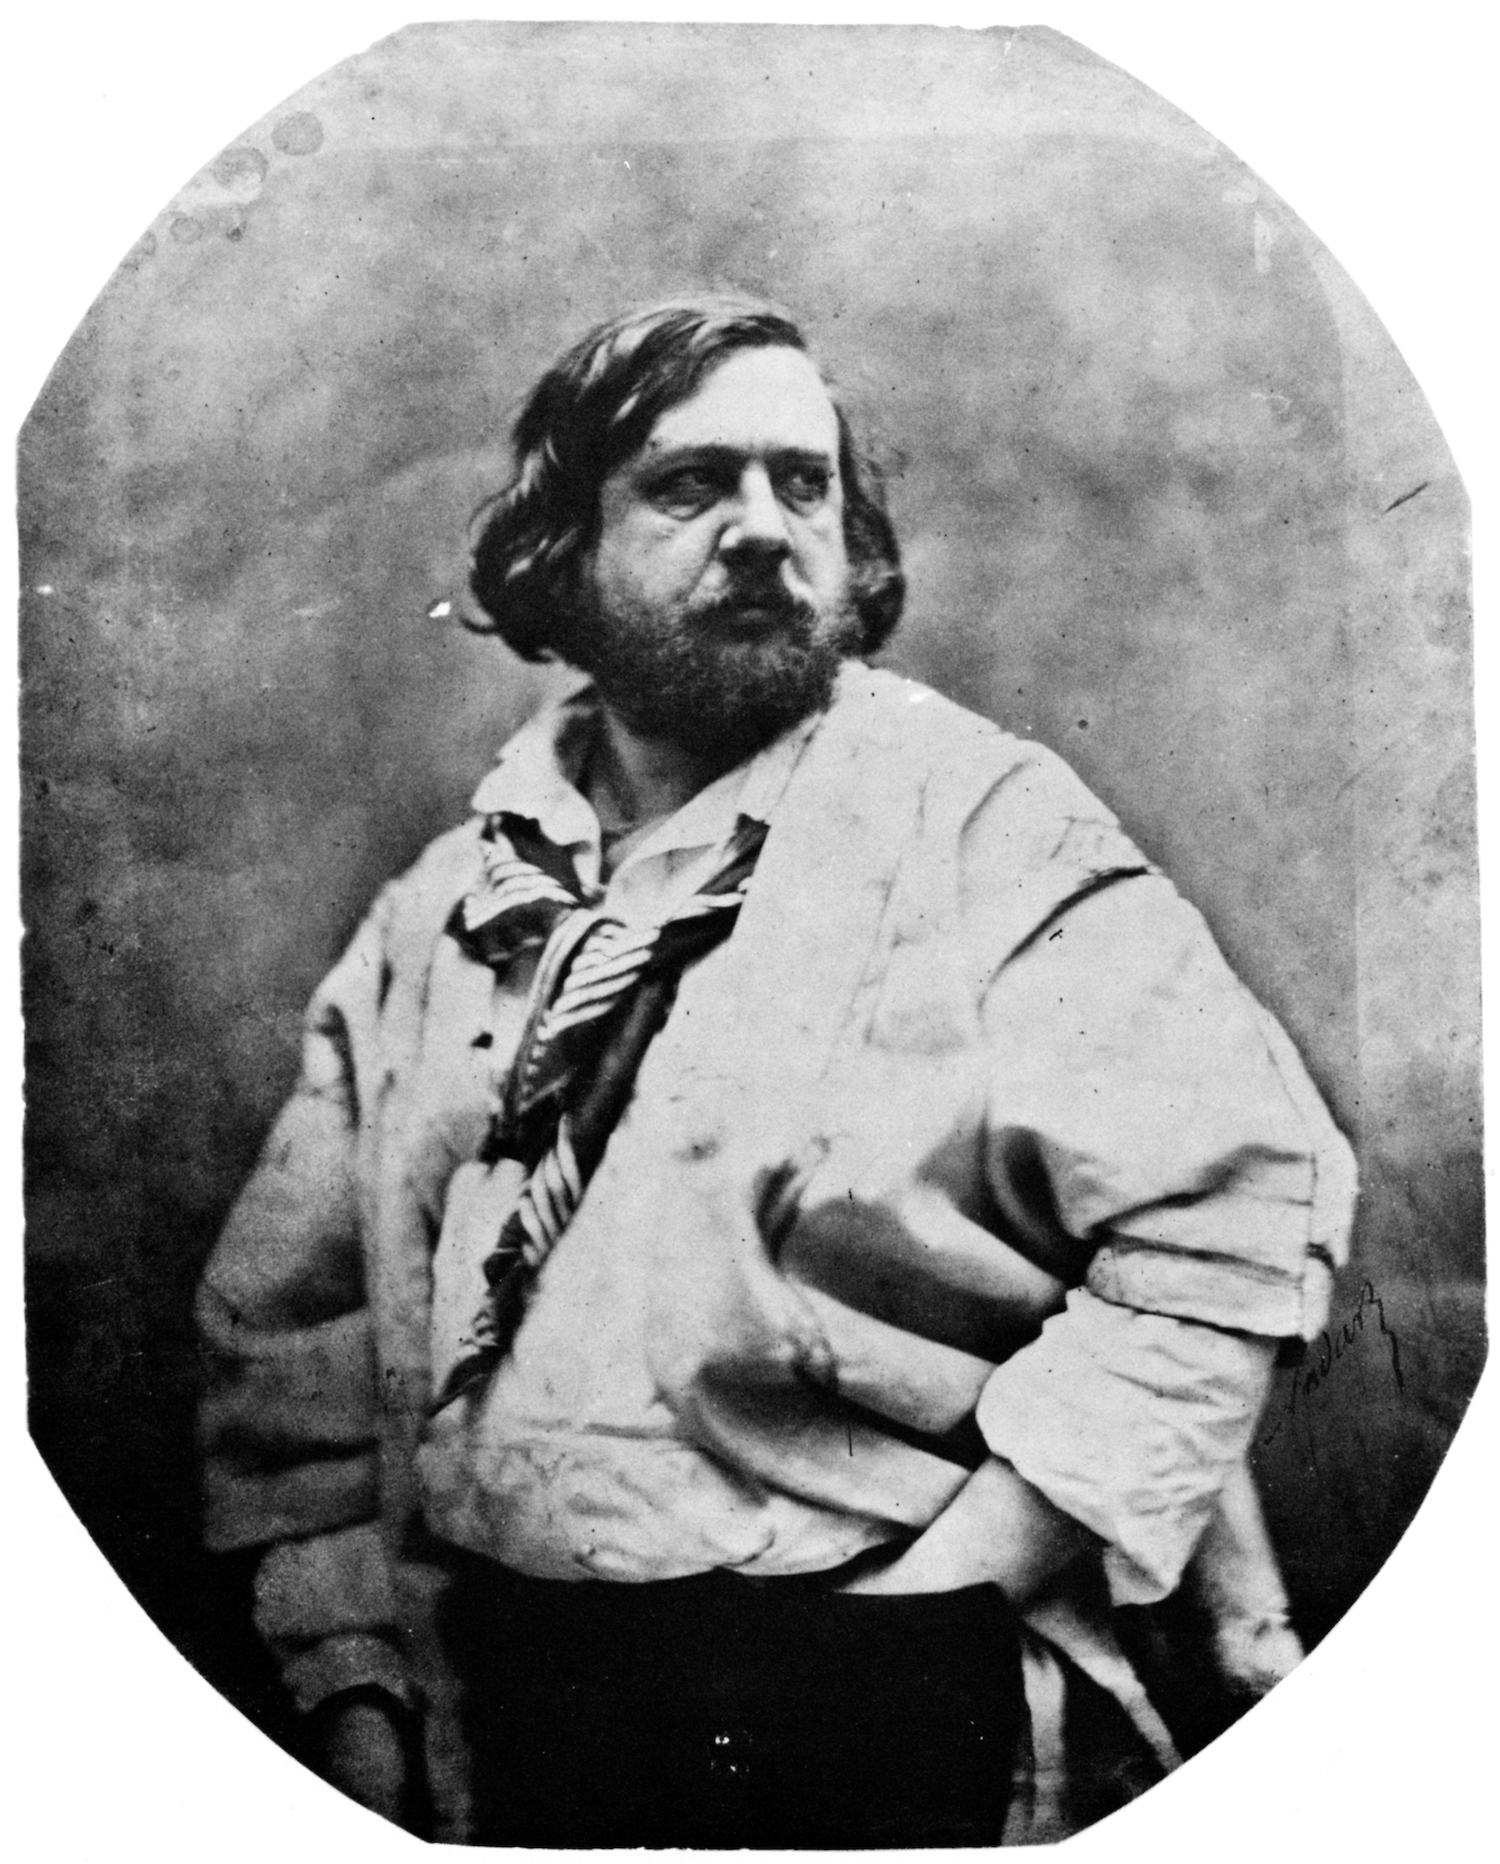 Theophile Gautier 1811-1872, French writer, Photograph by Felix Nadar (1856). Postcard, France, c. 1900